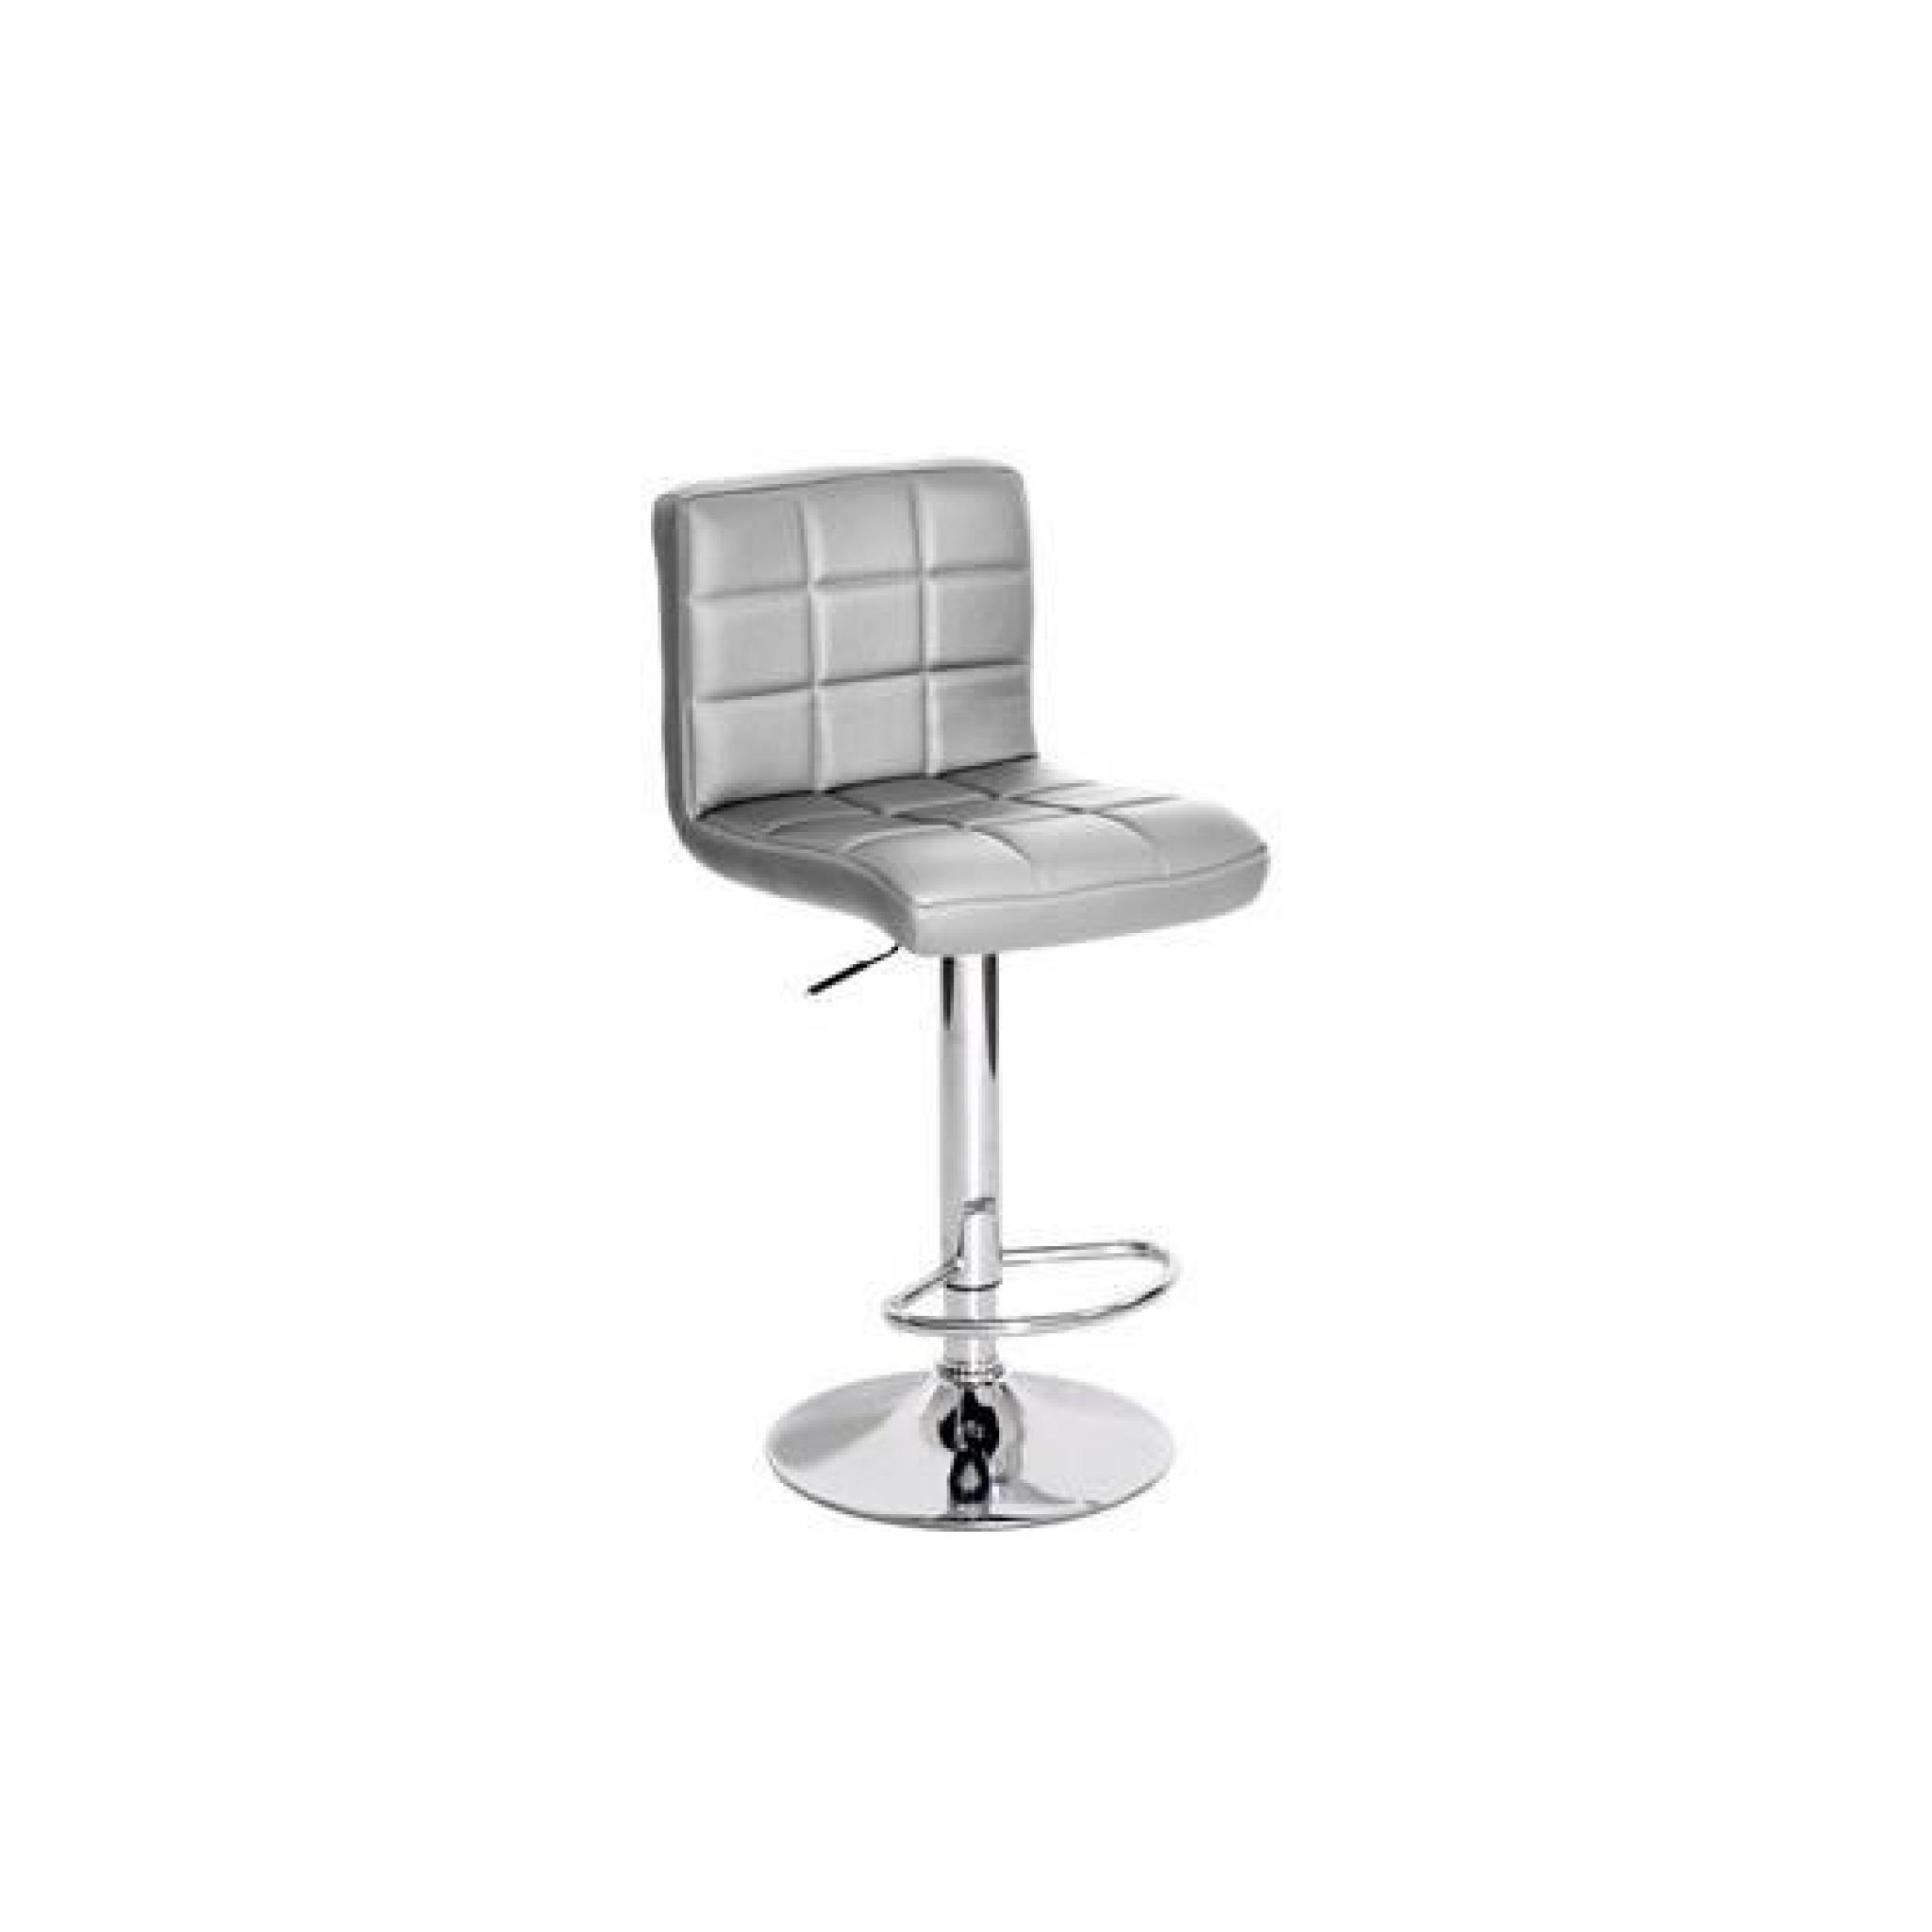 Songmics Lot De 2 Tabourets De Bar Stool Tabouret De Bar Gris Argent